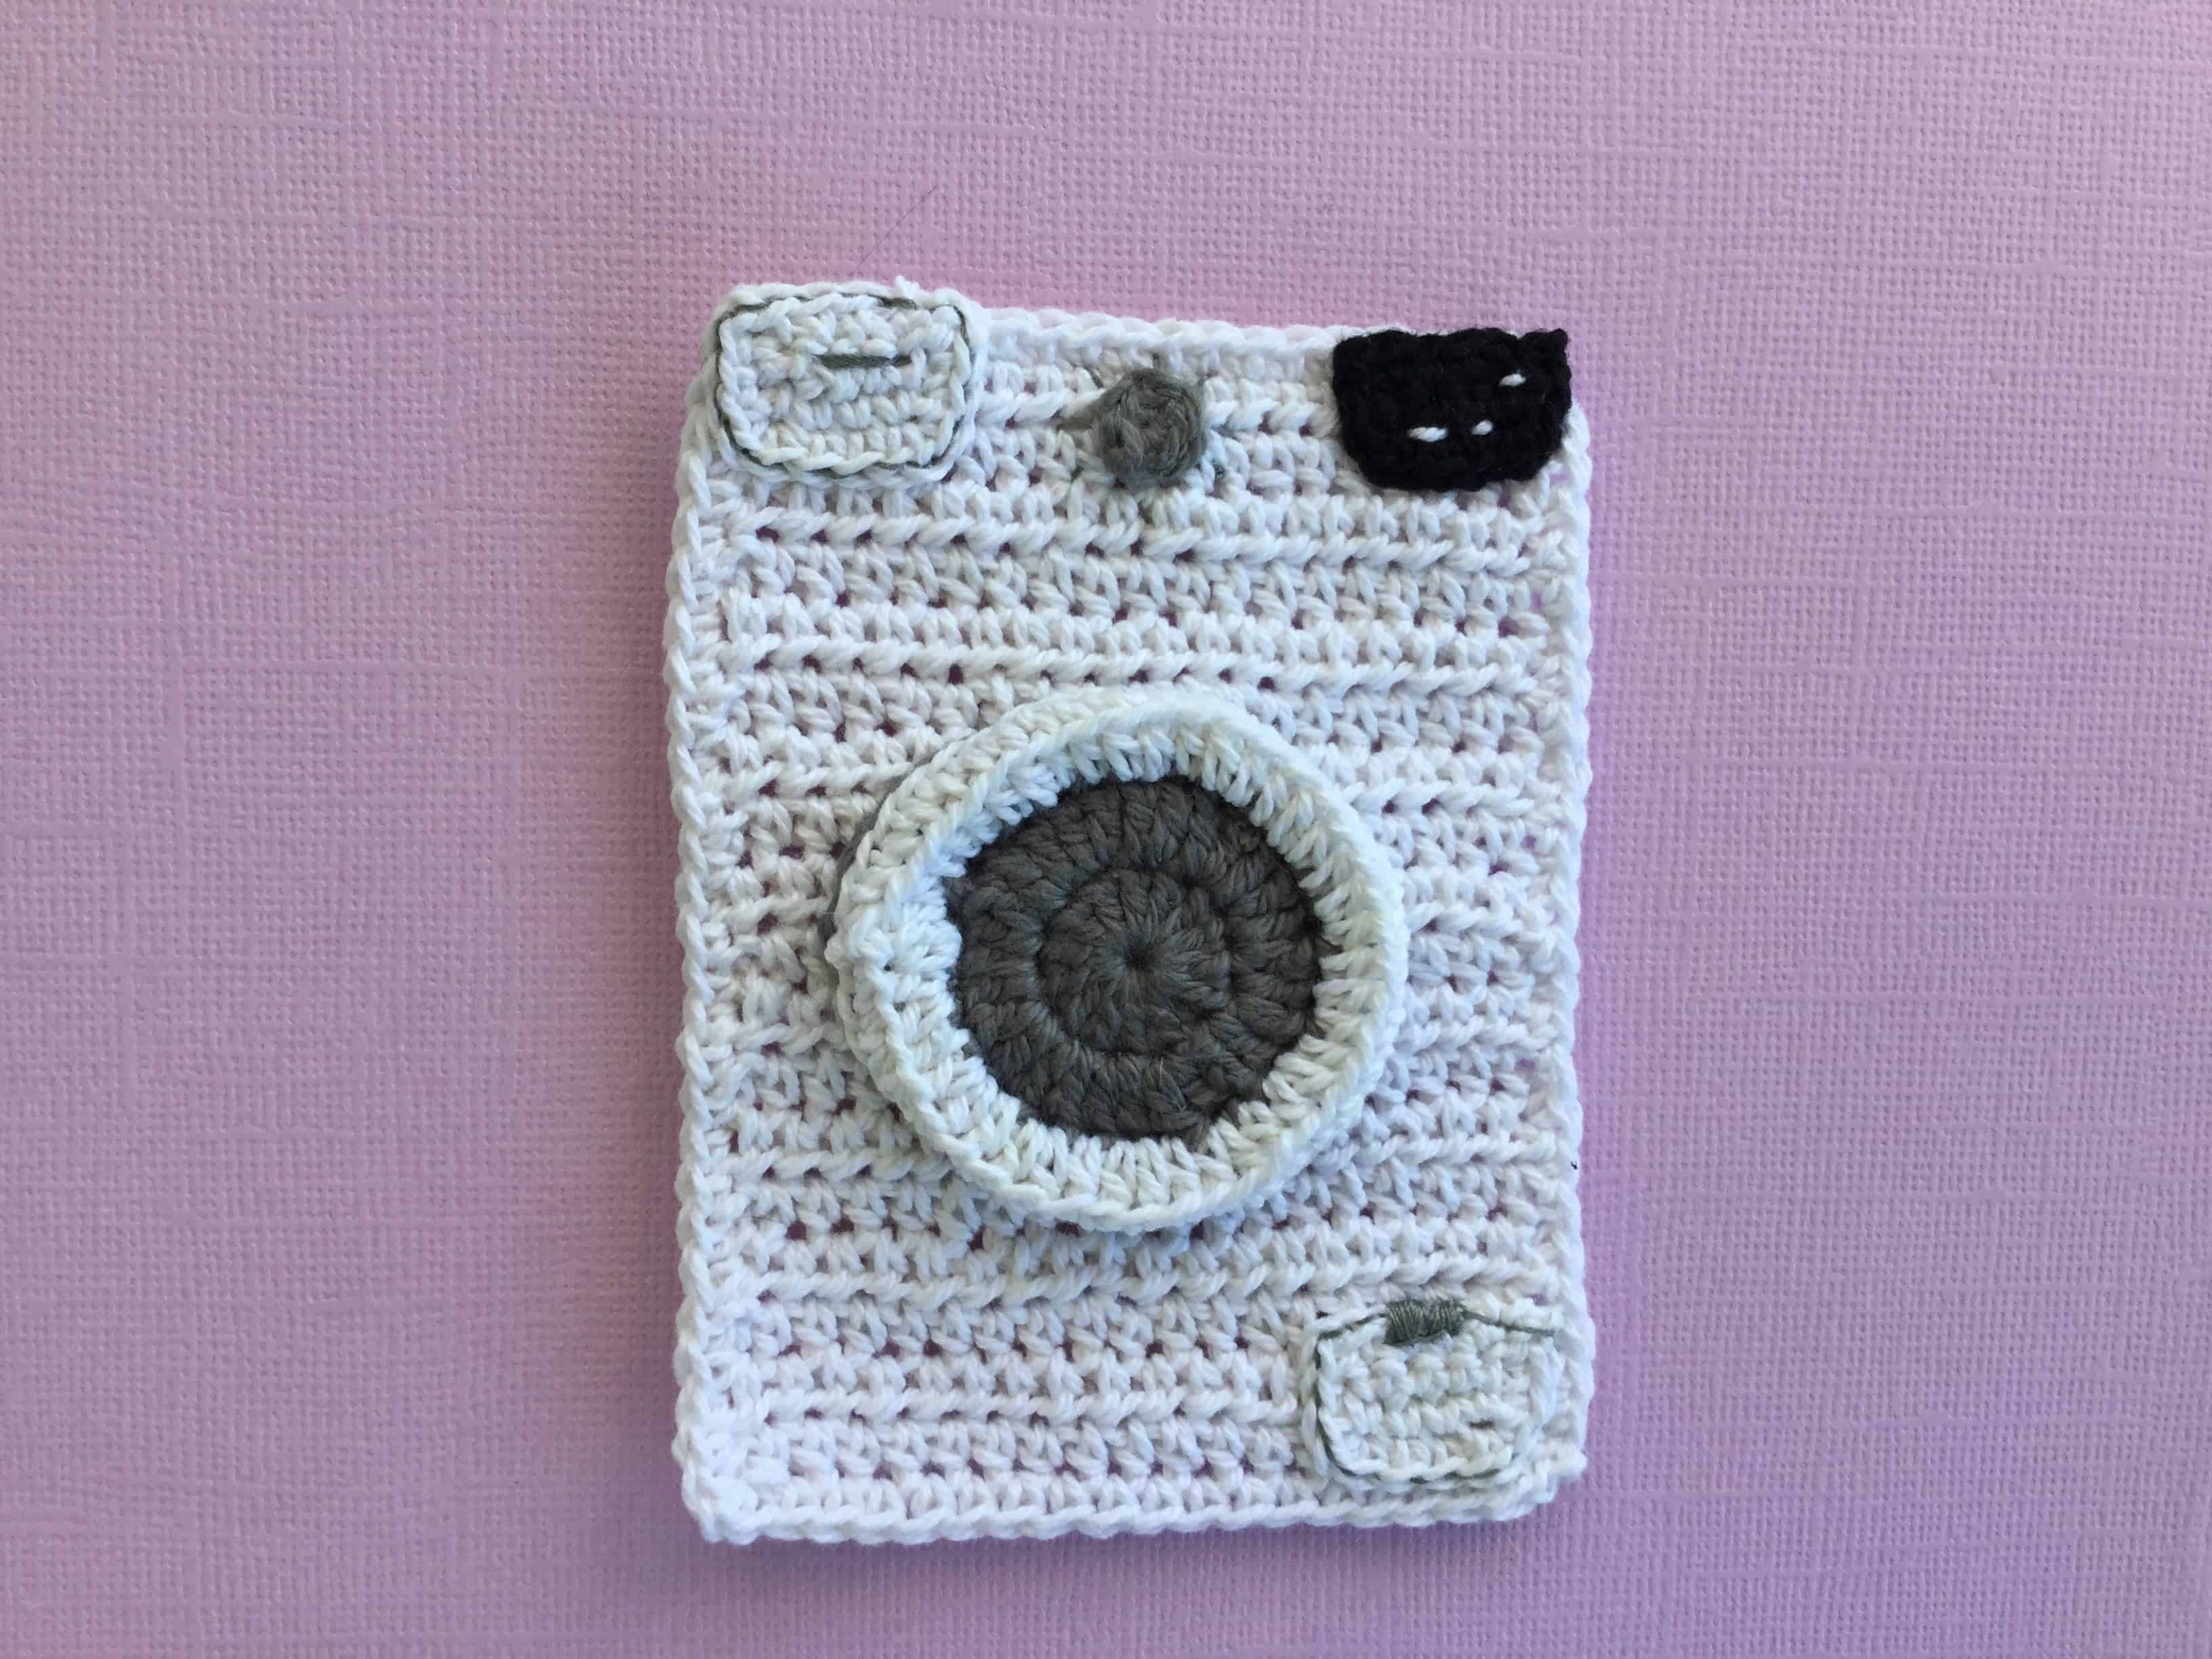 Finished crochet washing machine landscape